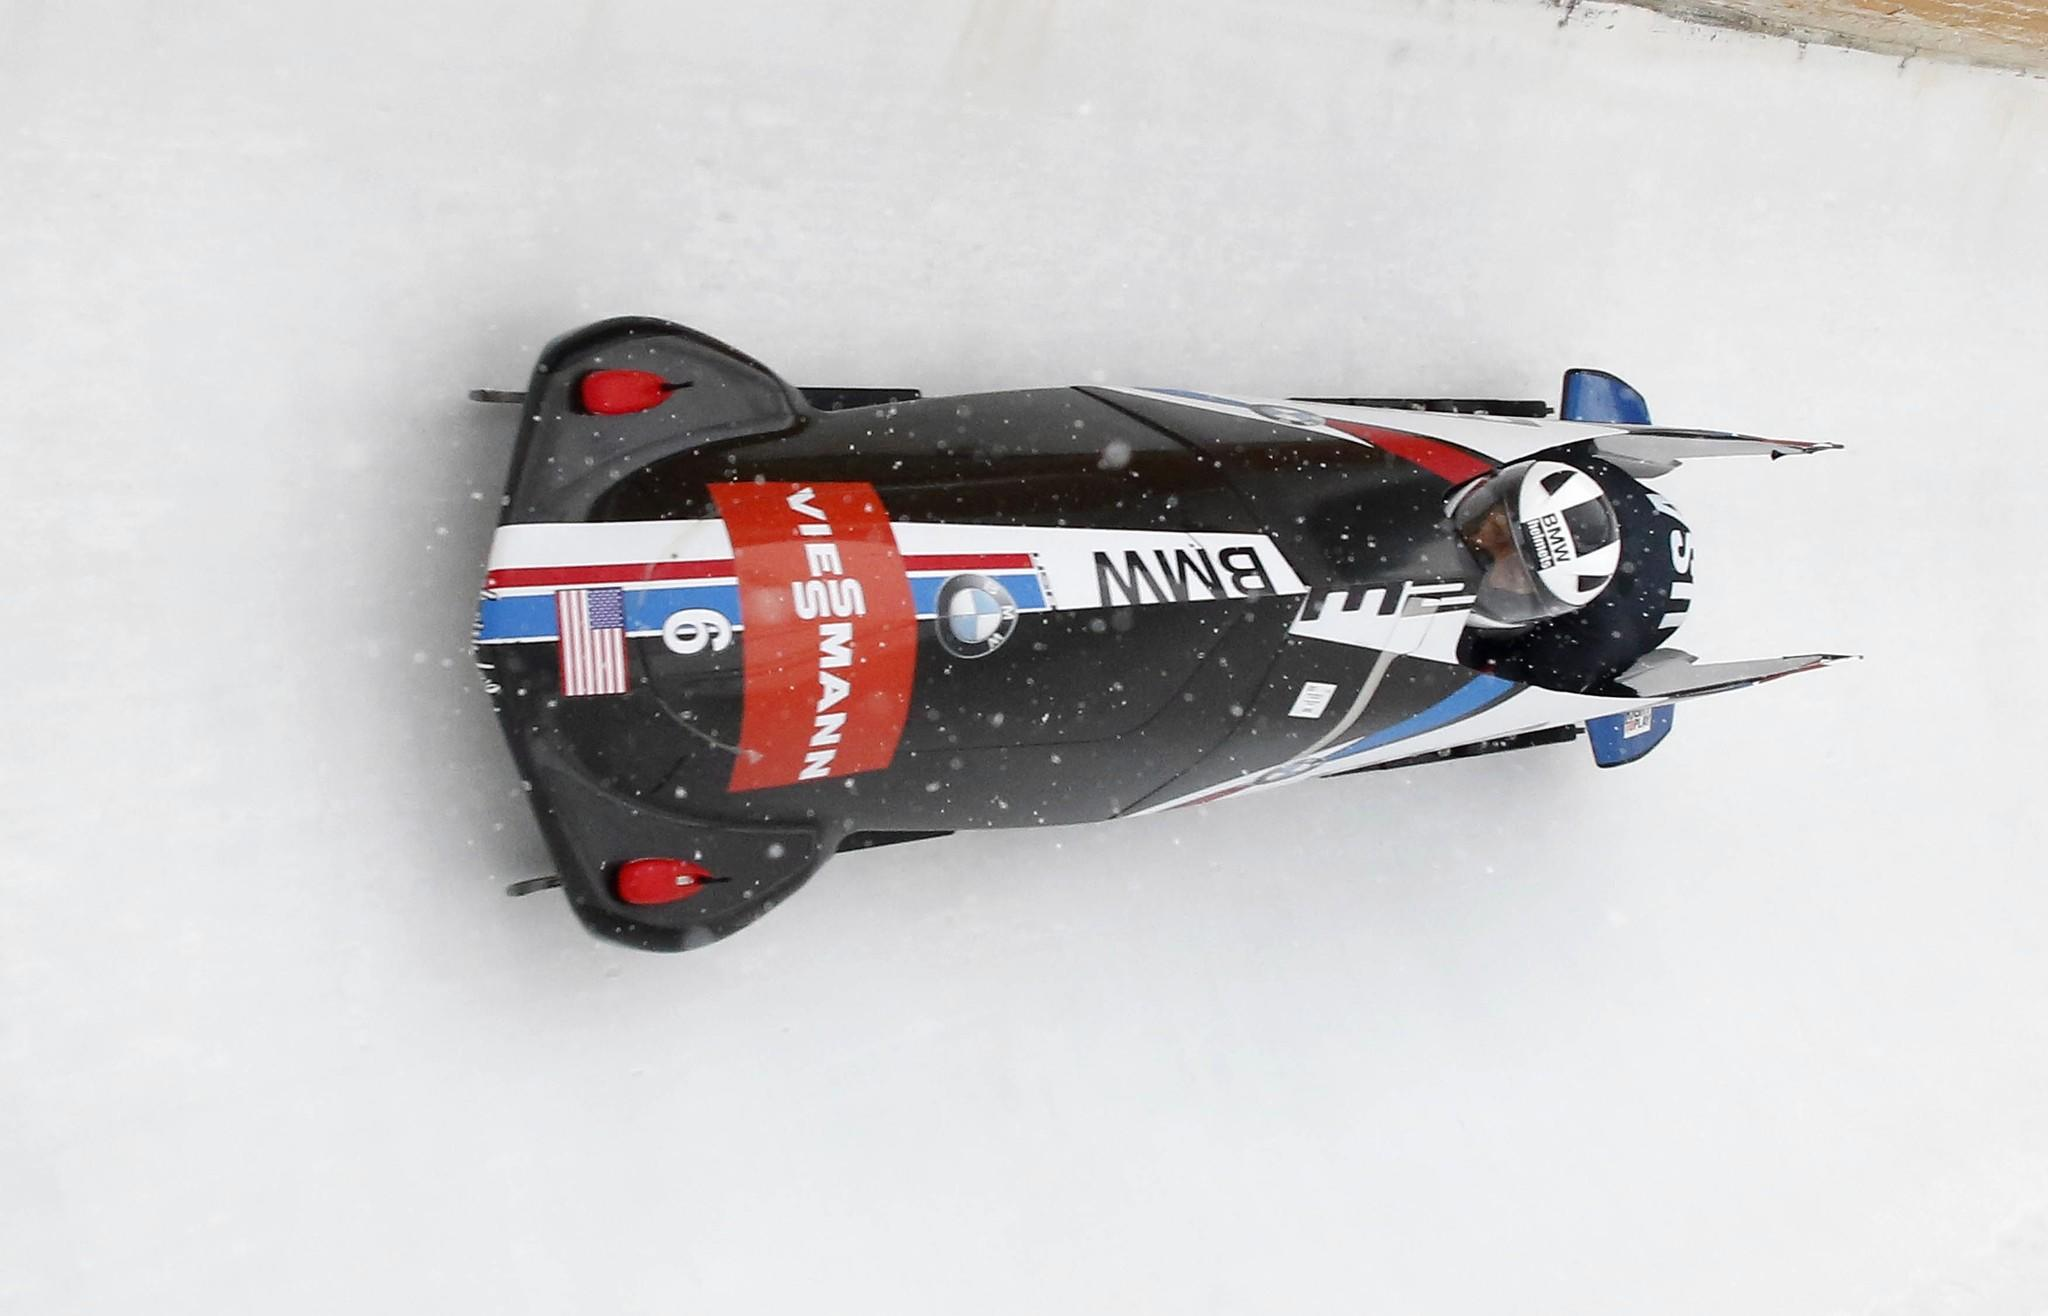 2014 Olympic medalists Elana Meyers and Aja Evans in last December's bobsled World Cup at the Utah Olympic Park.